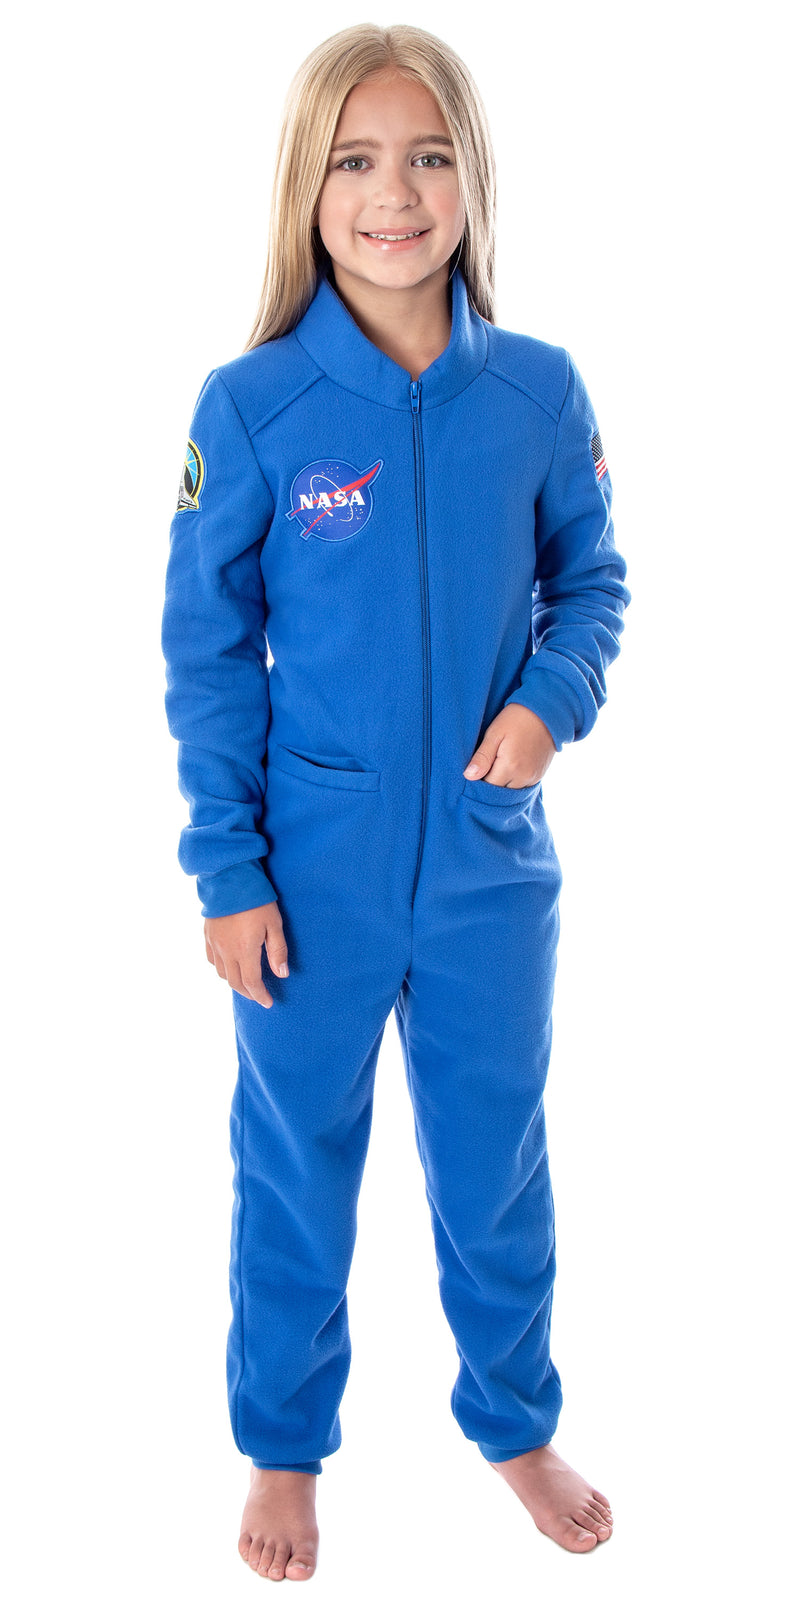 NASA Girls' Meatball Logo Space Suit Astronaut Costume One Piece Pajama Union Suit